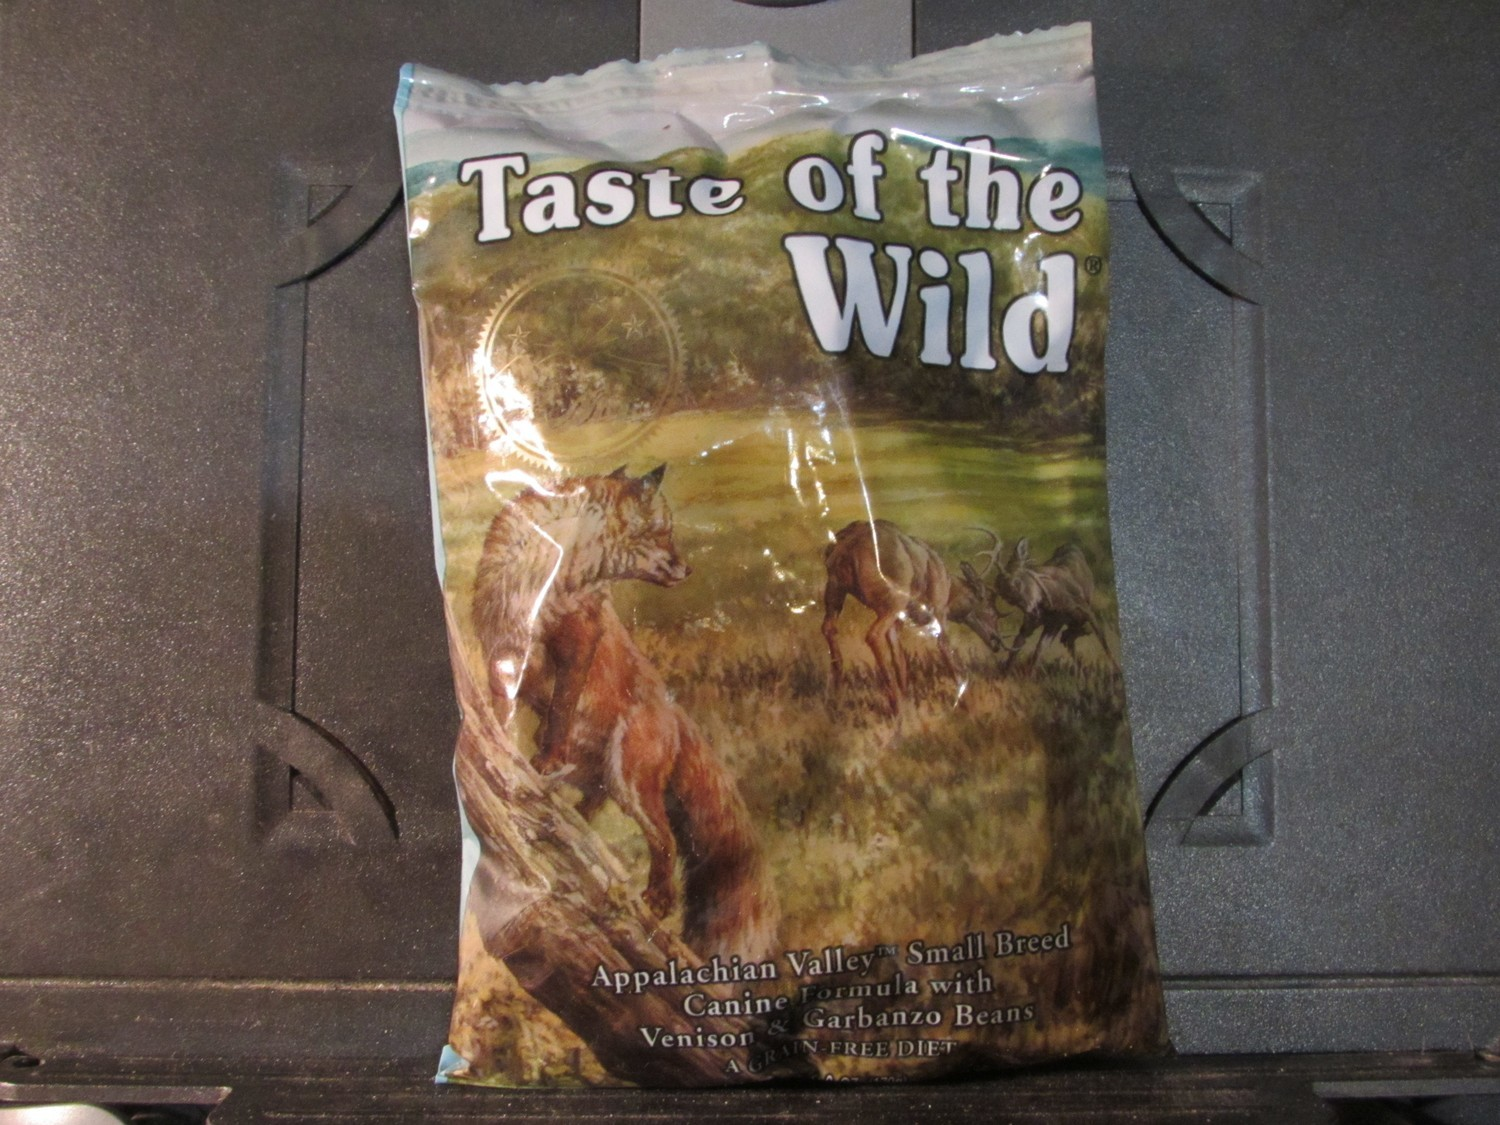 Taste of the Wild Appalachin Valley Small Breed Dog GF Venison & Garbanzo Beans 6 oz (A.P1)